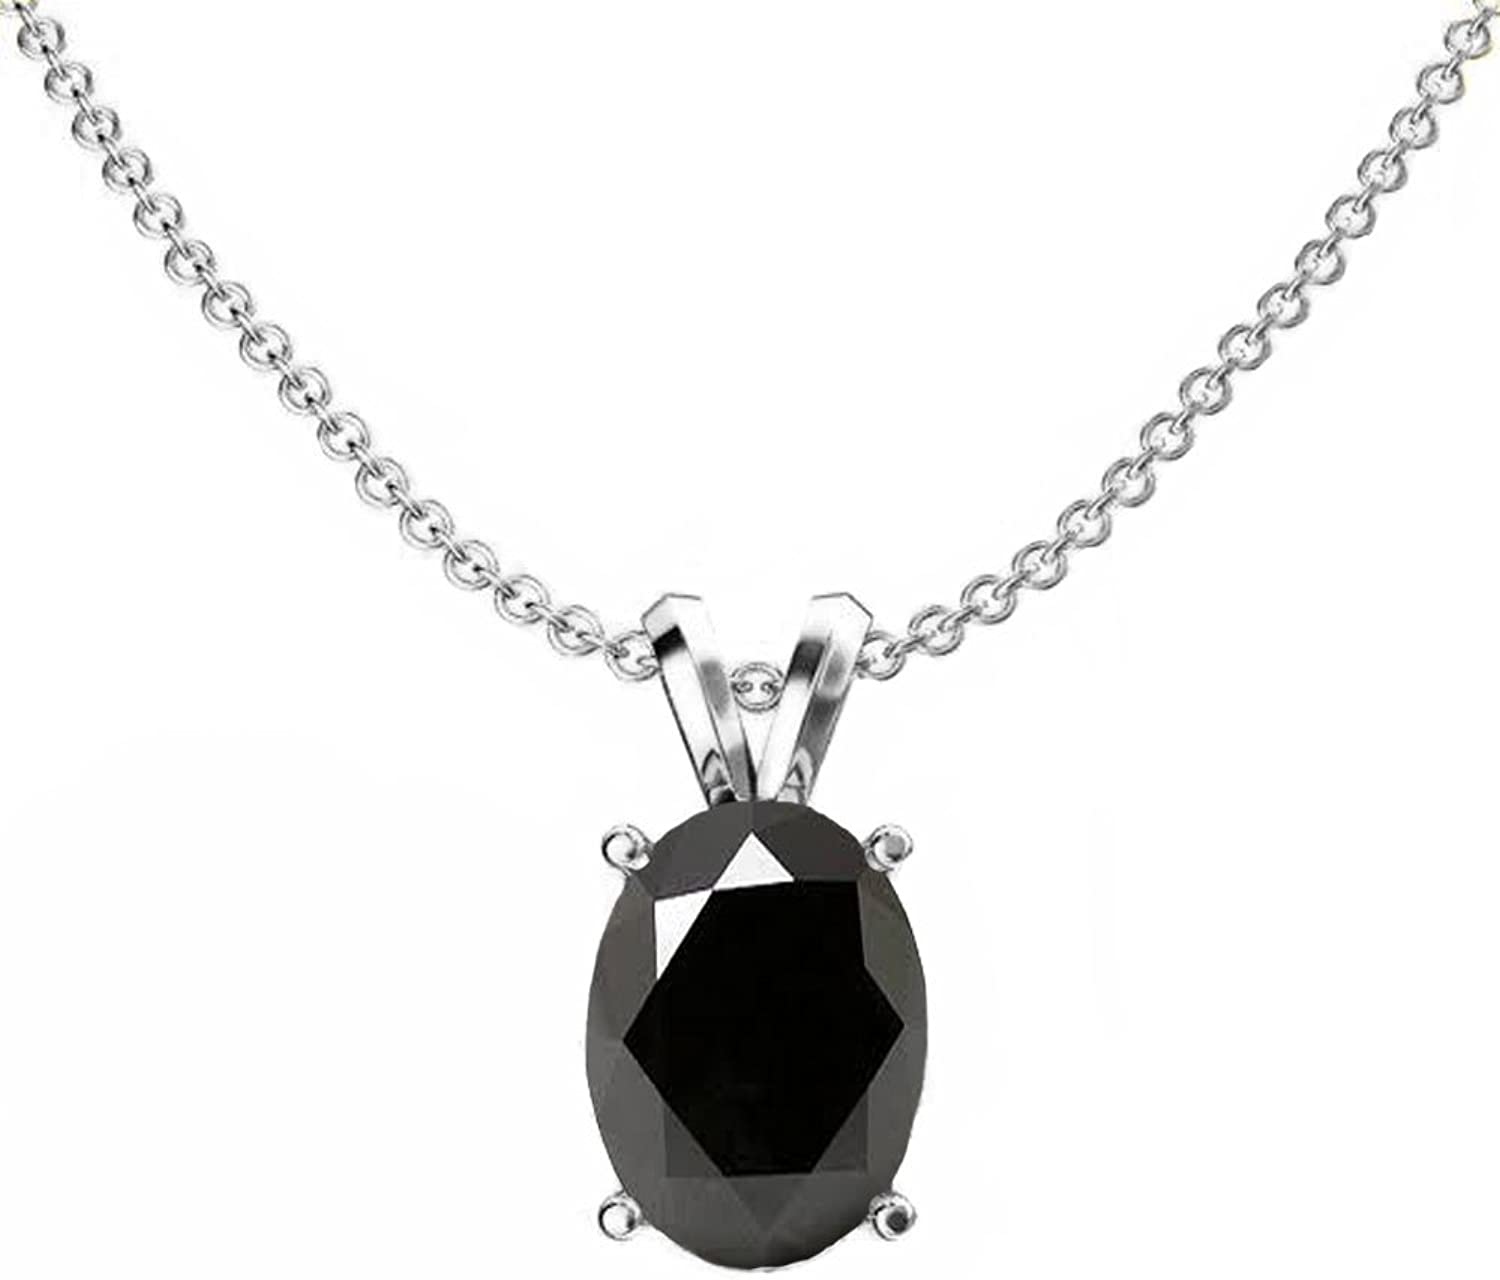 10K White gold 8x6 mm Oval Cut Ladies Solitaire Pendant (Silver Chain Included)